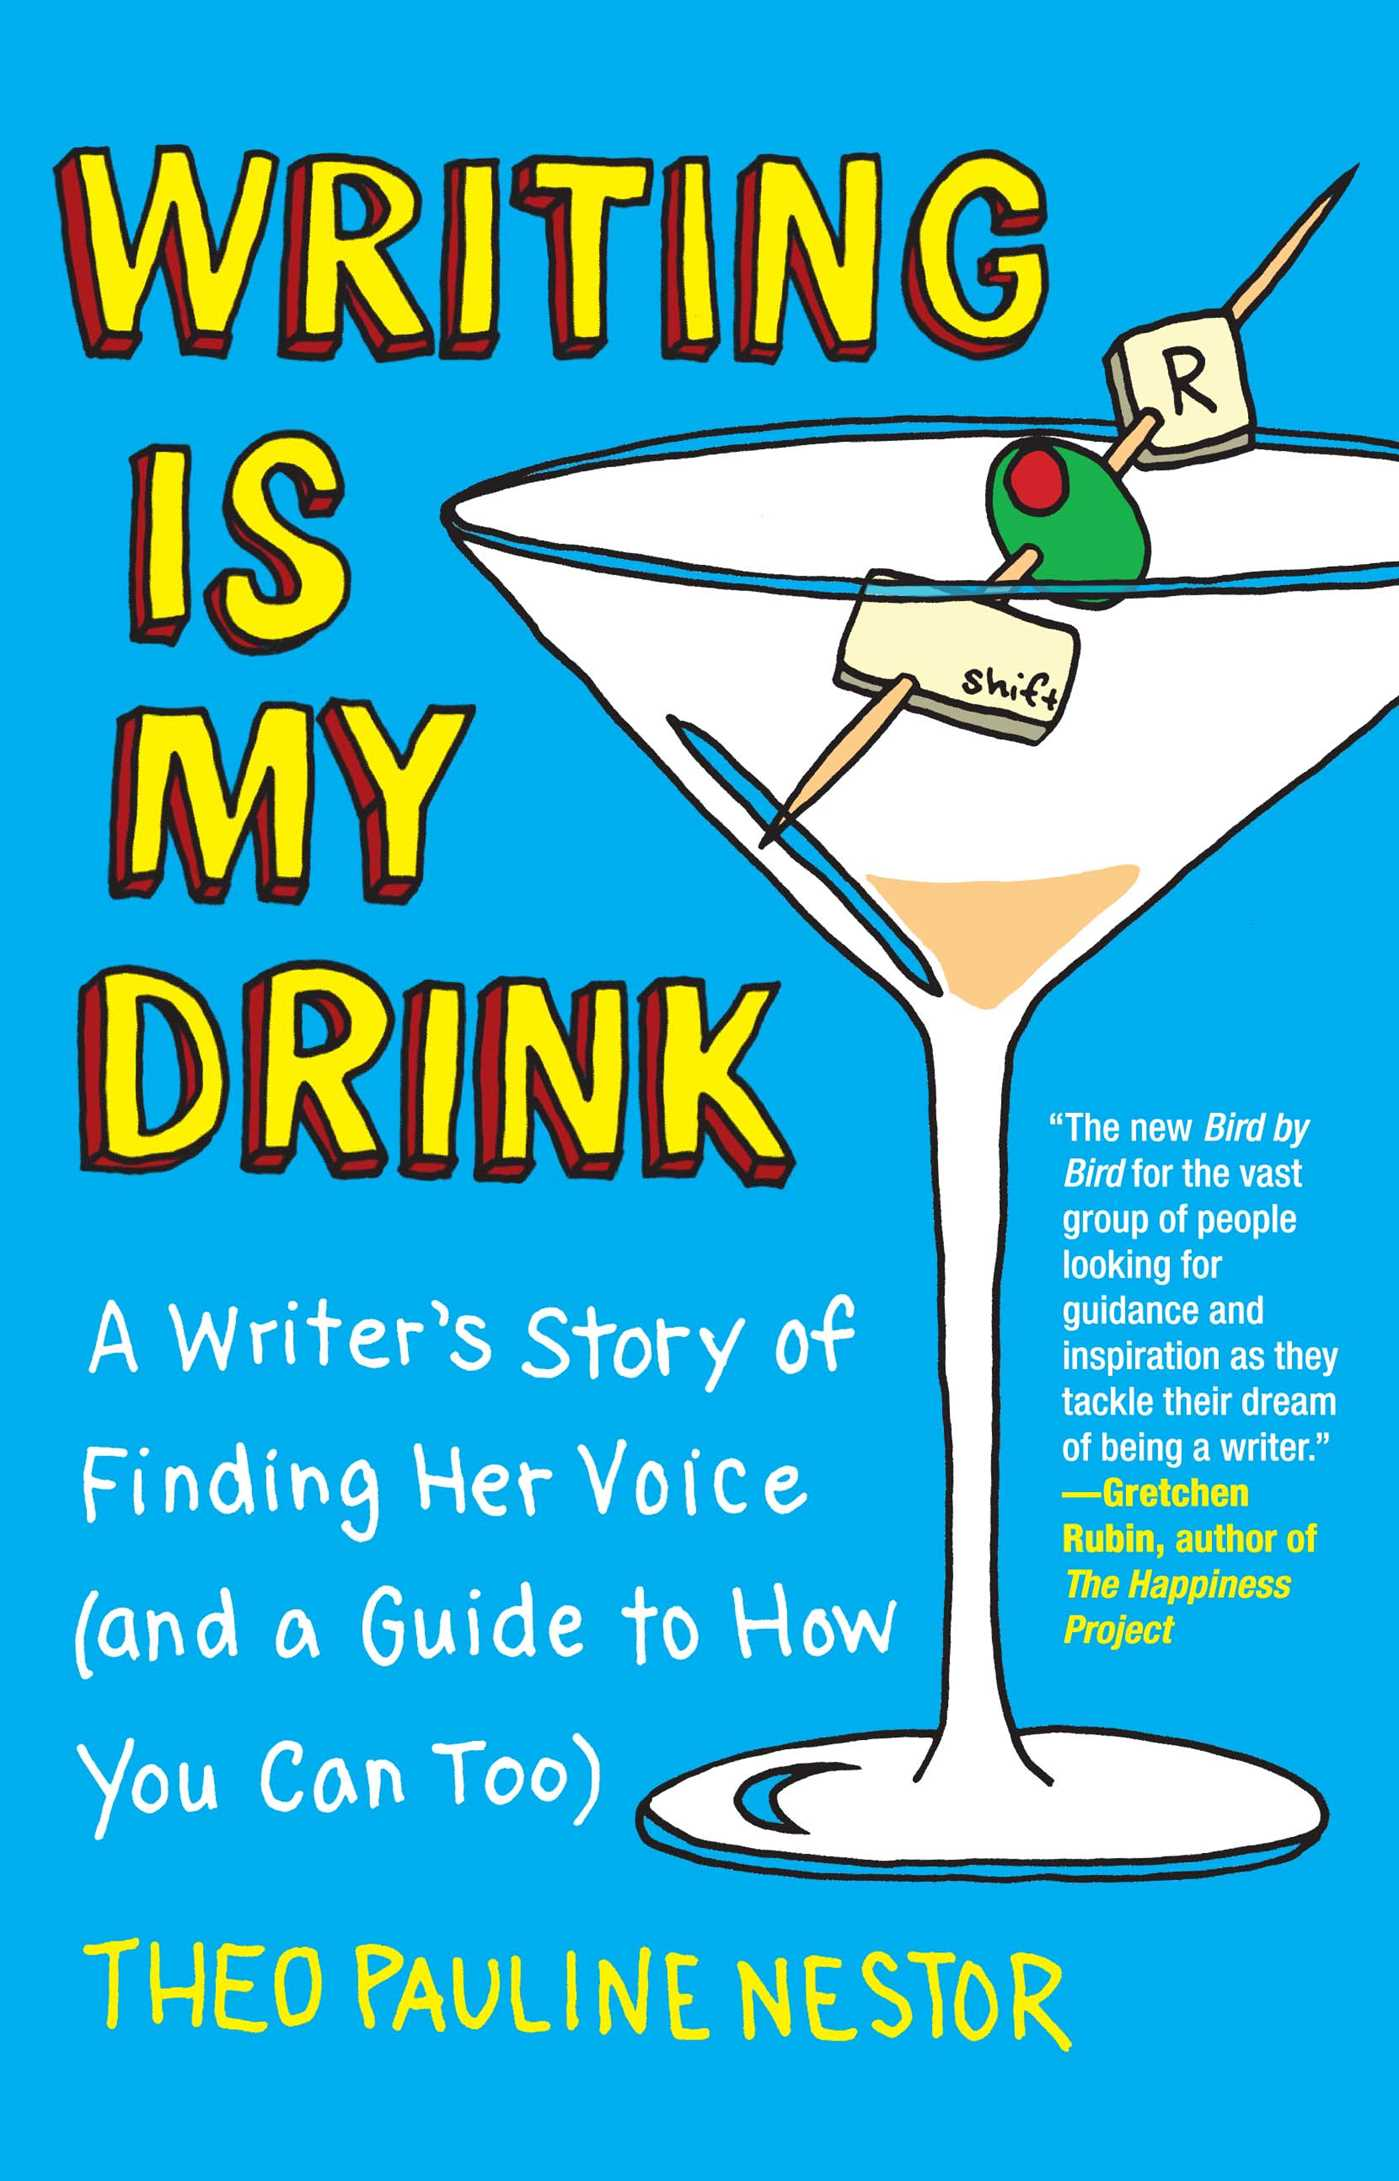 Writing-is-my-drink-9781451665093_hr